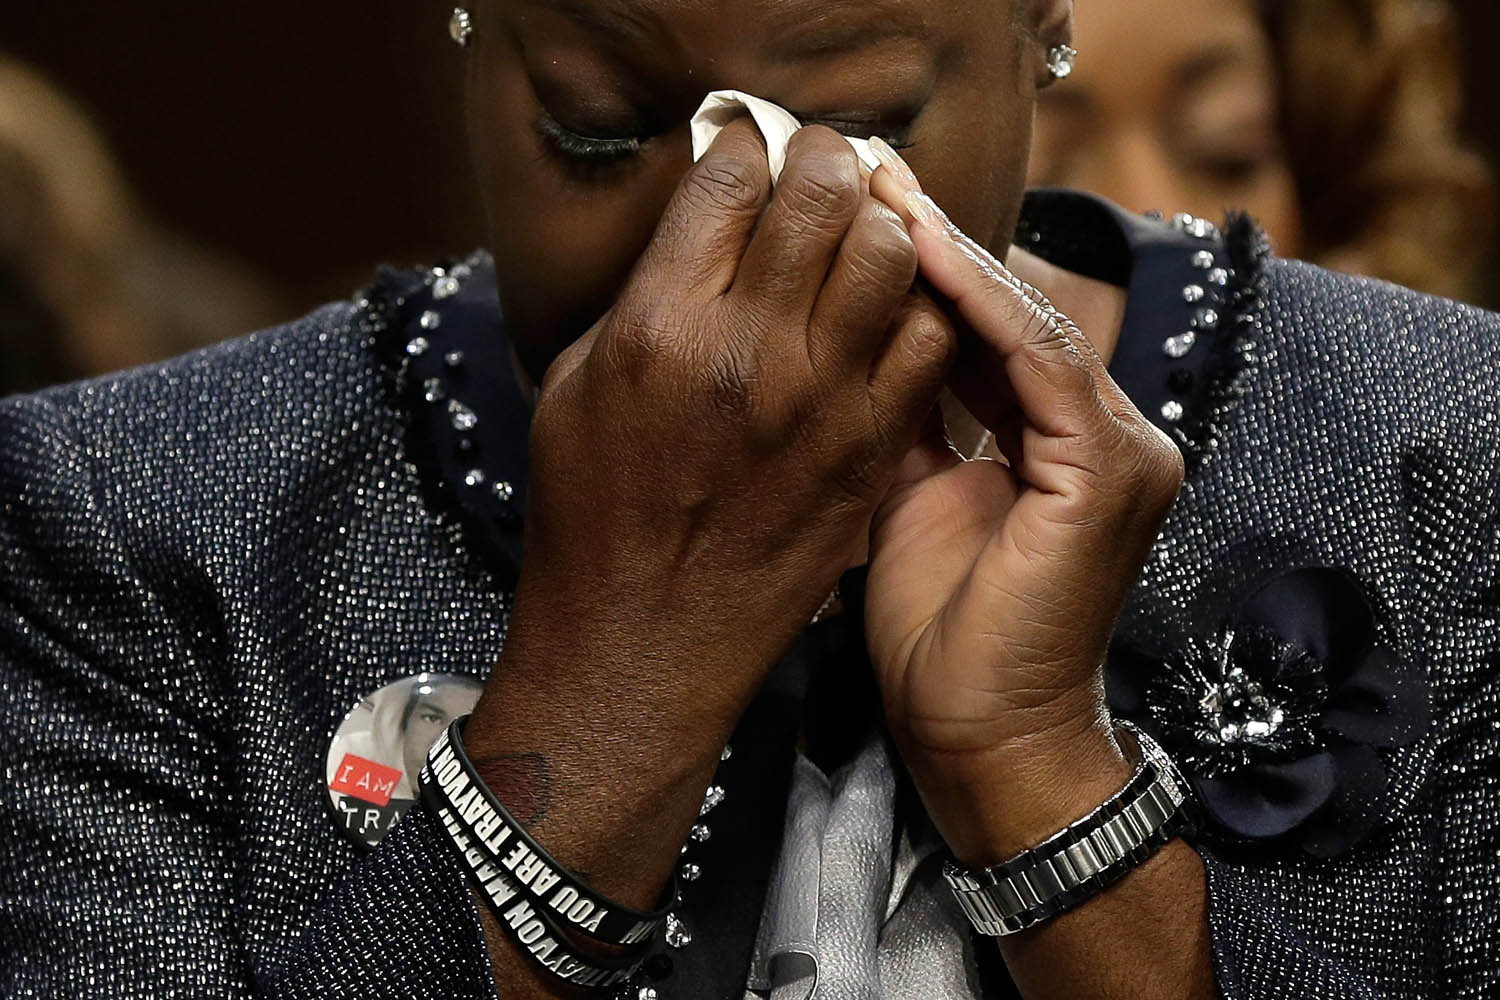 Oct. 29, 2013. Sybrina Fulton of Miami, Fla., mother of Trayvon Martin, wipes her eyes during a Senate Judiciary Committee hearing on  Stand Your Ground  laws in Washington.